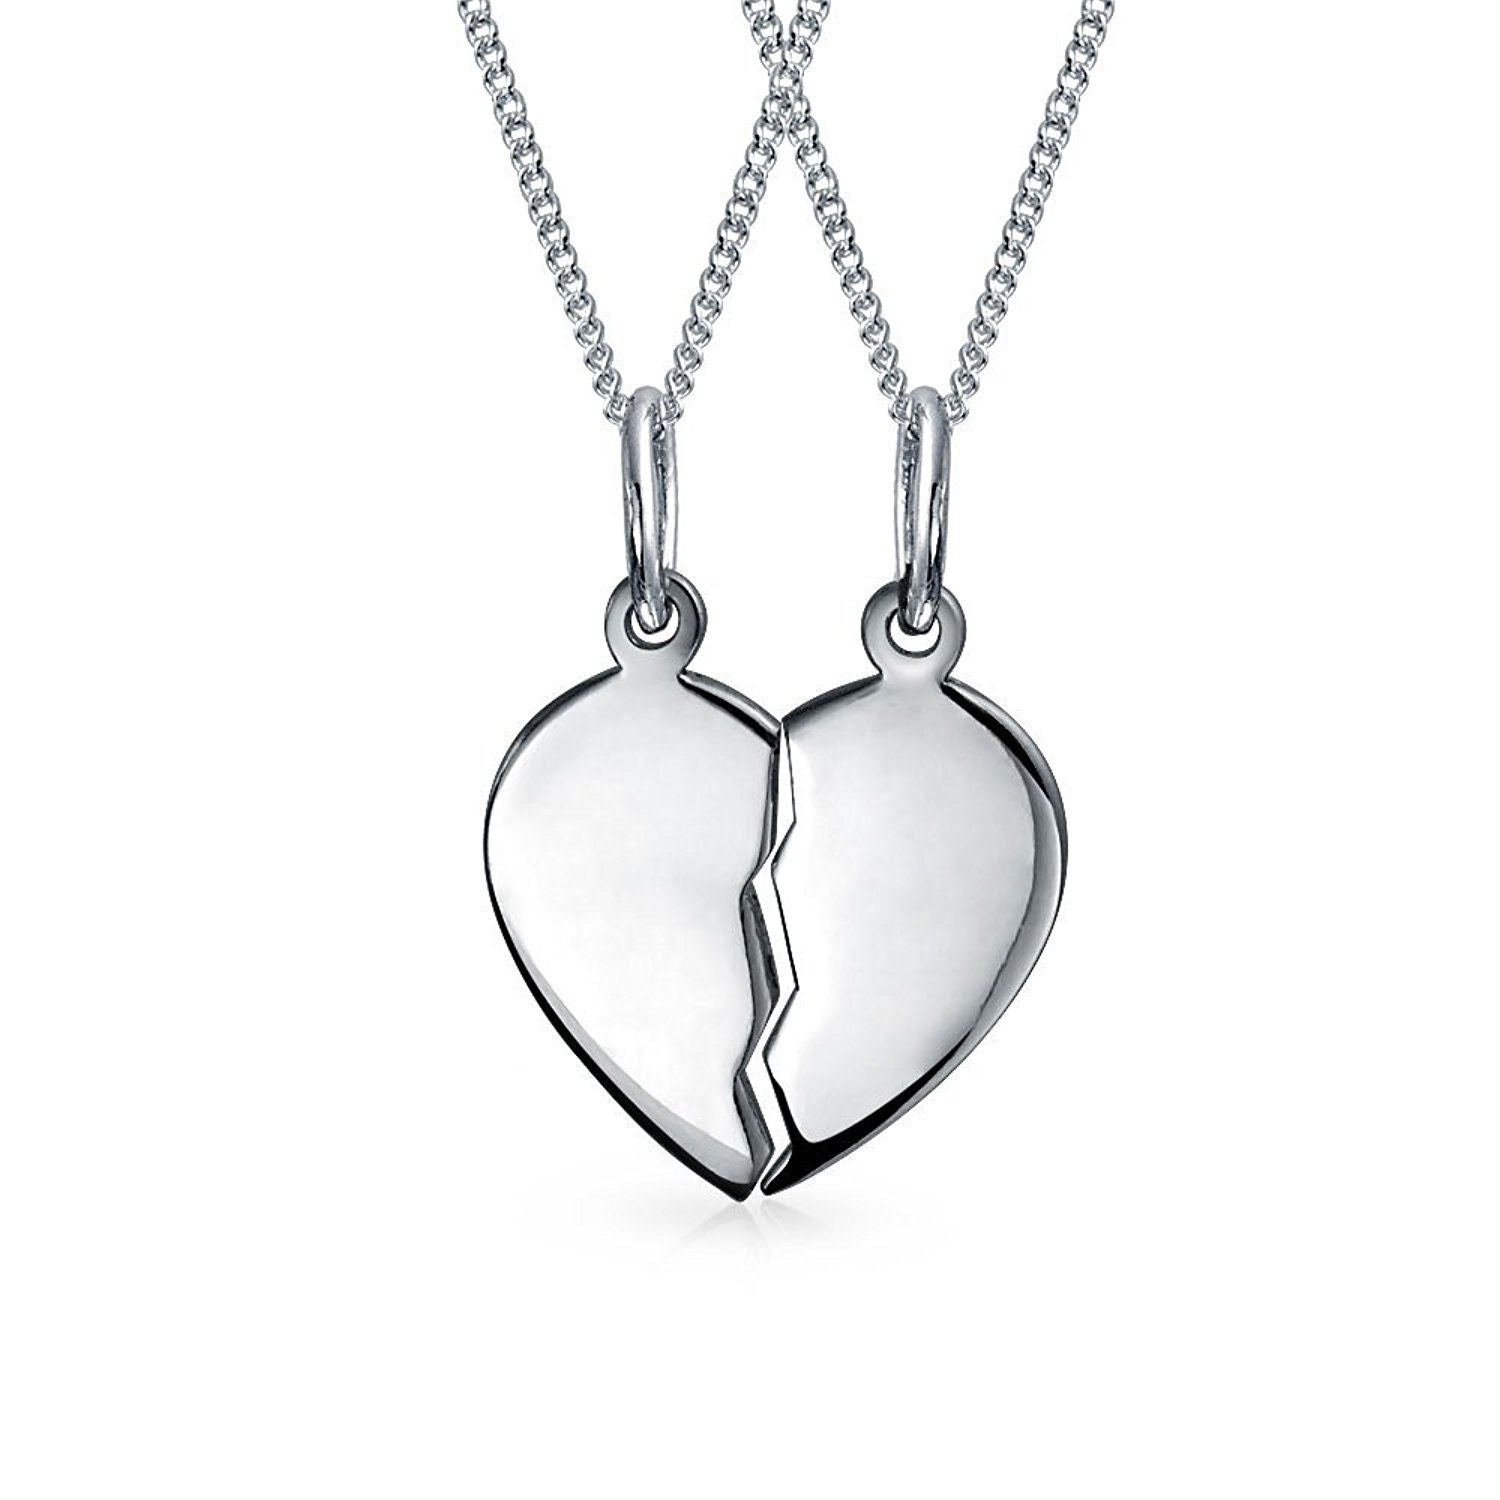 Sterling Silver Split Heart Pendant 27mm x 19mm - 017